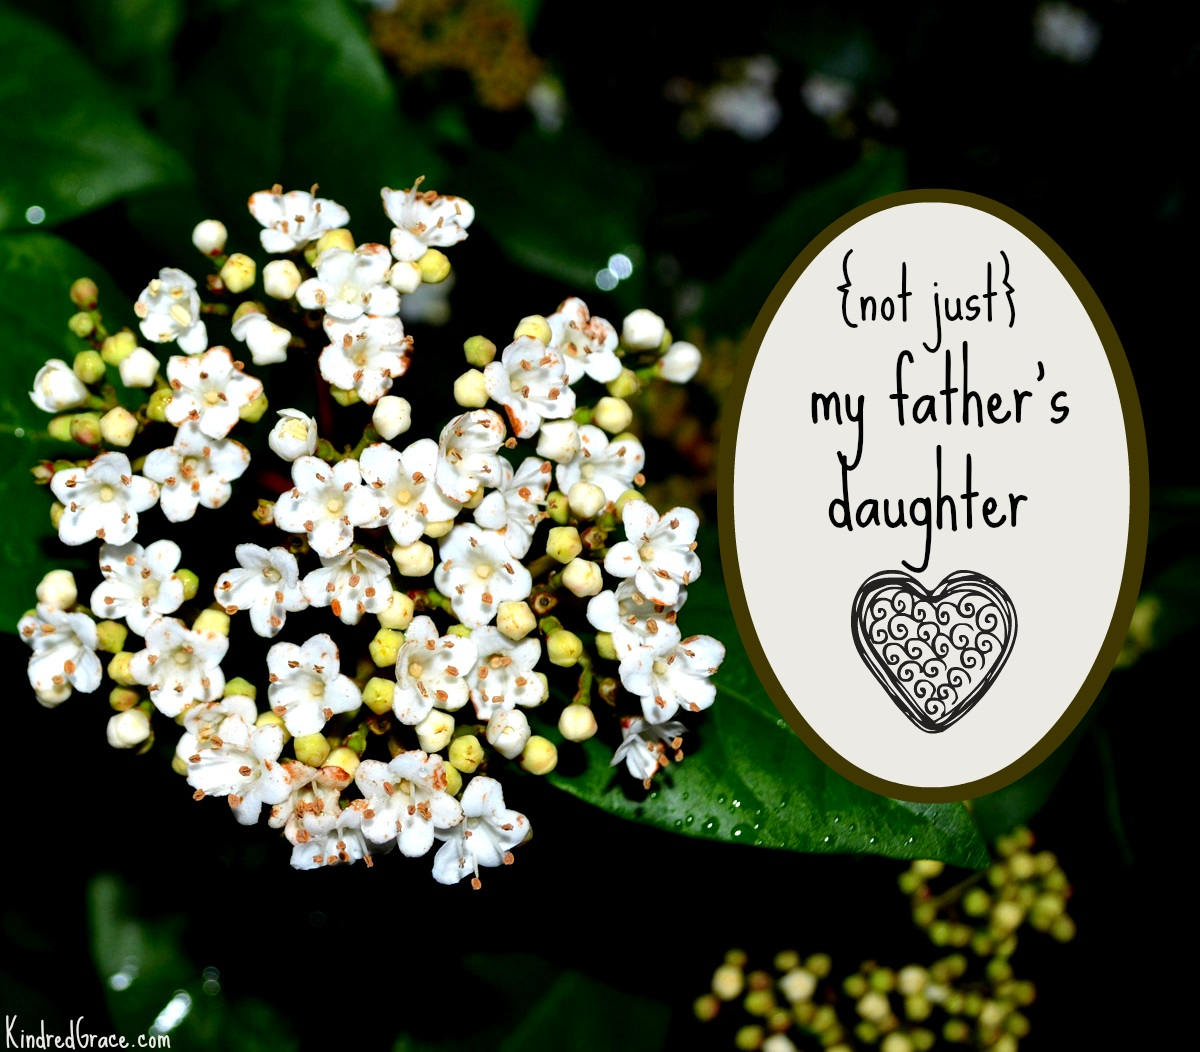 {not just} my father's daughter